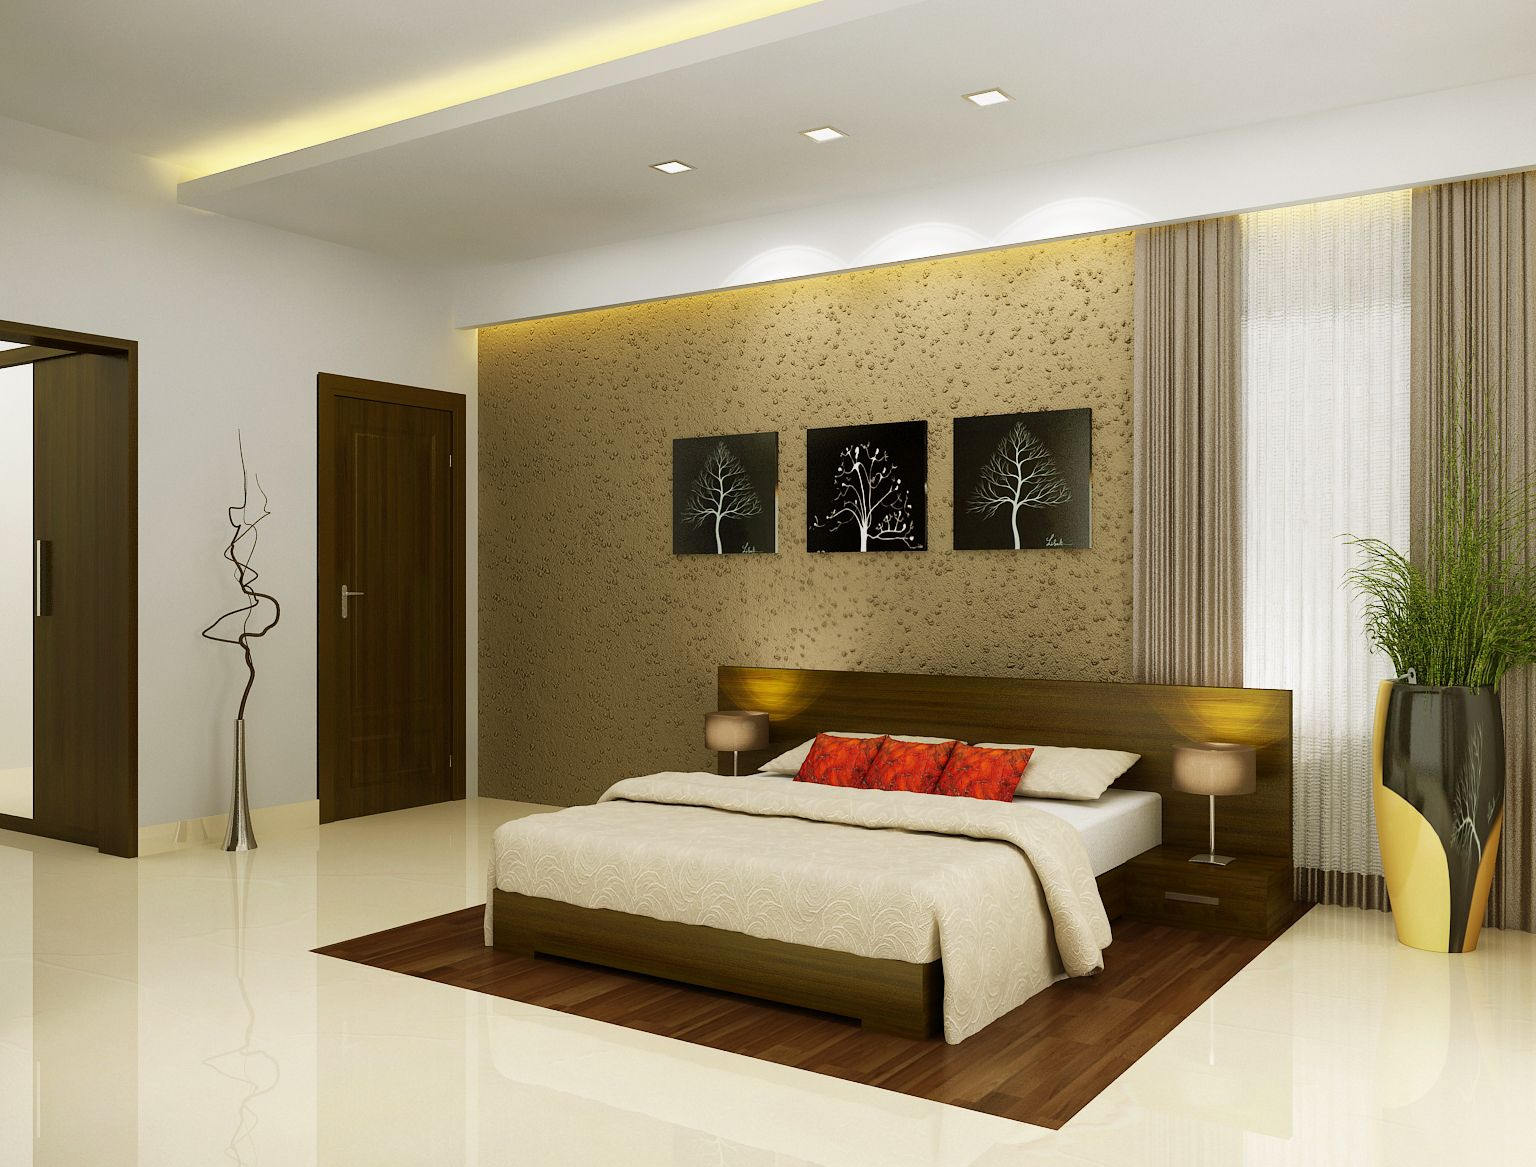 Bedroom design kerala style design ideas 2017 2018 for Interior furniture design for bedroom